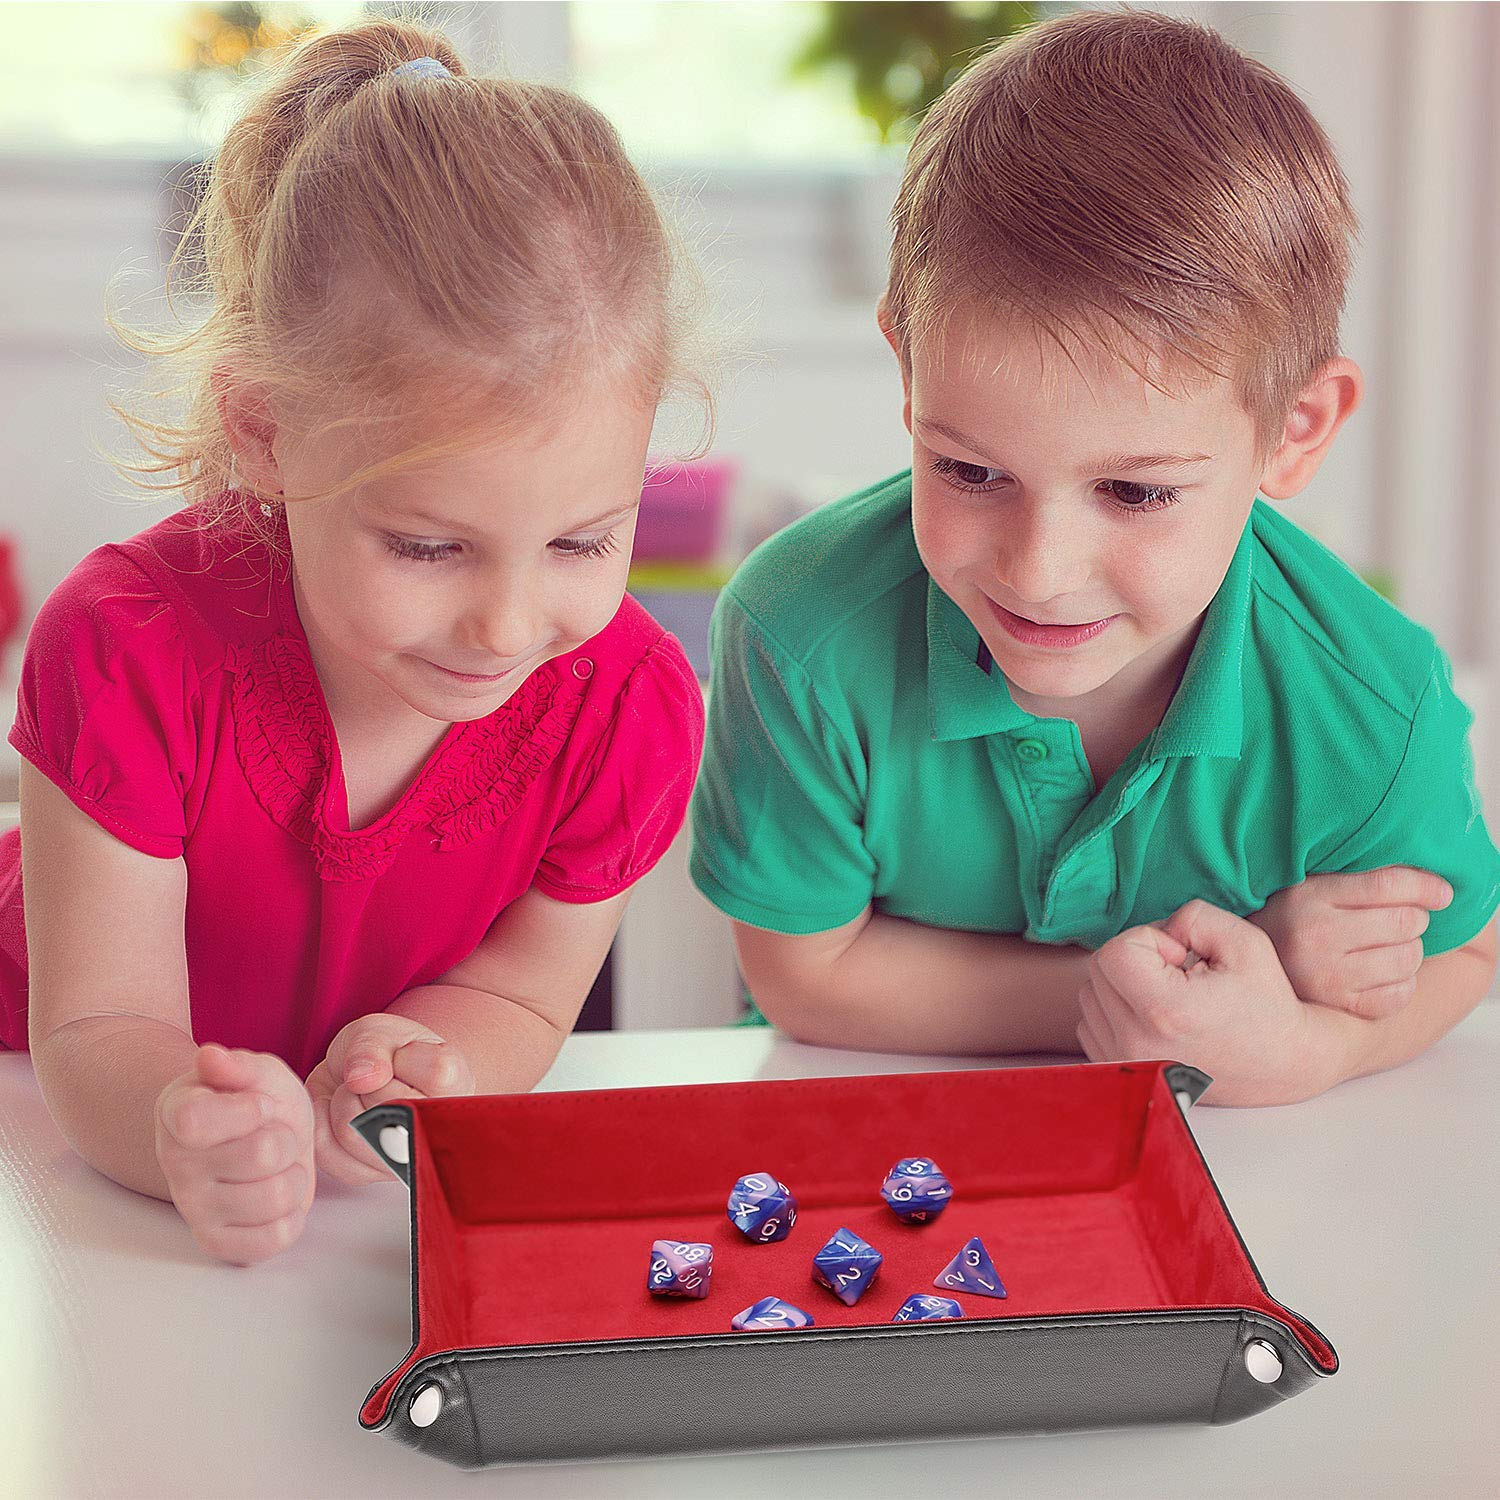 3 Pack Dice Tray for Rolling RPG DND Table Games Rectangle Folding PU Leather Tray Candy Holder Storage Box pushang